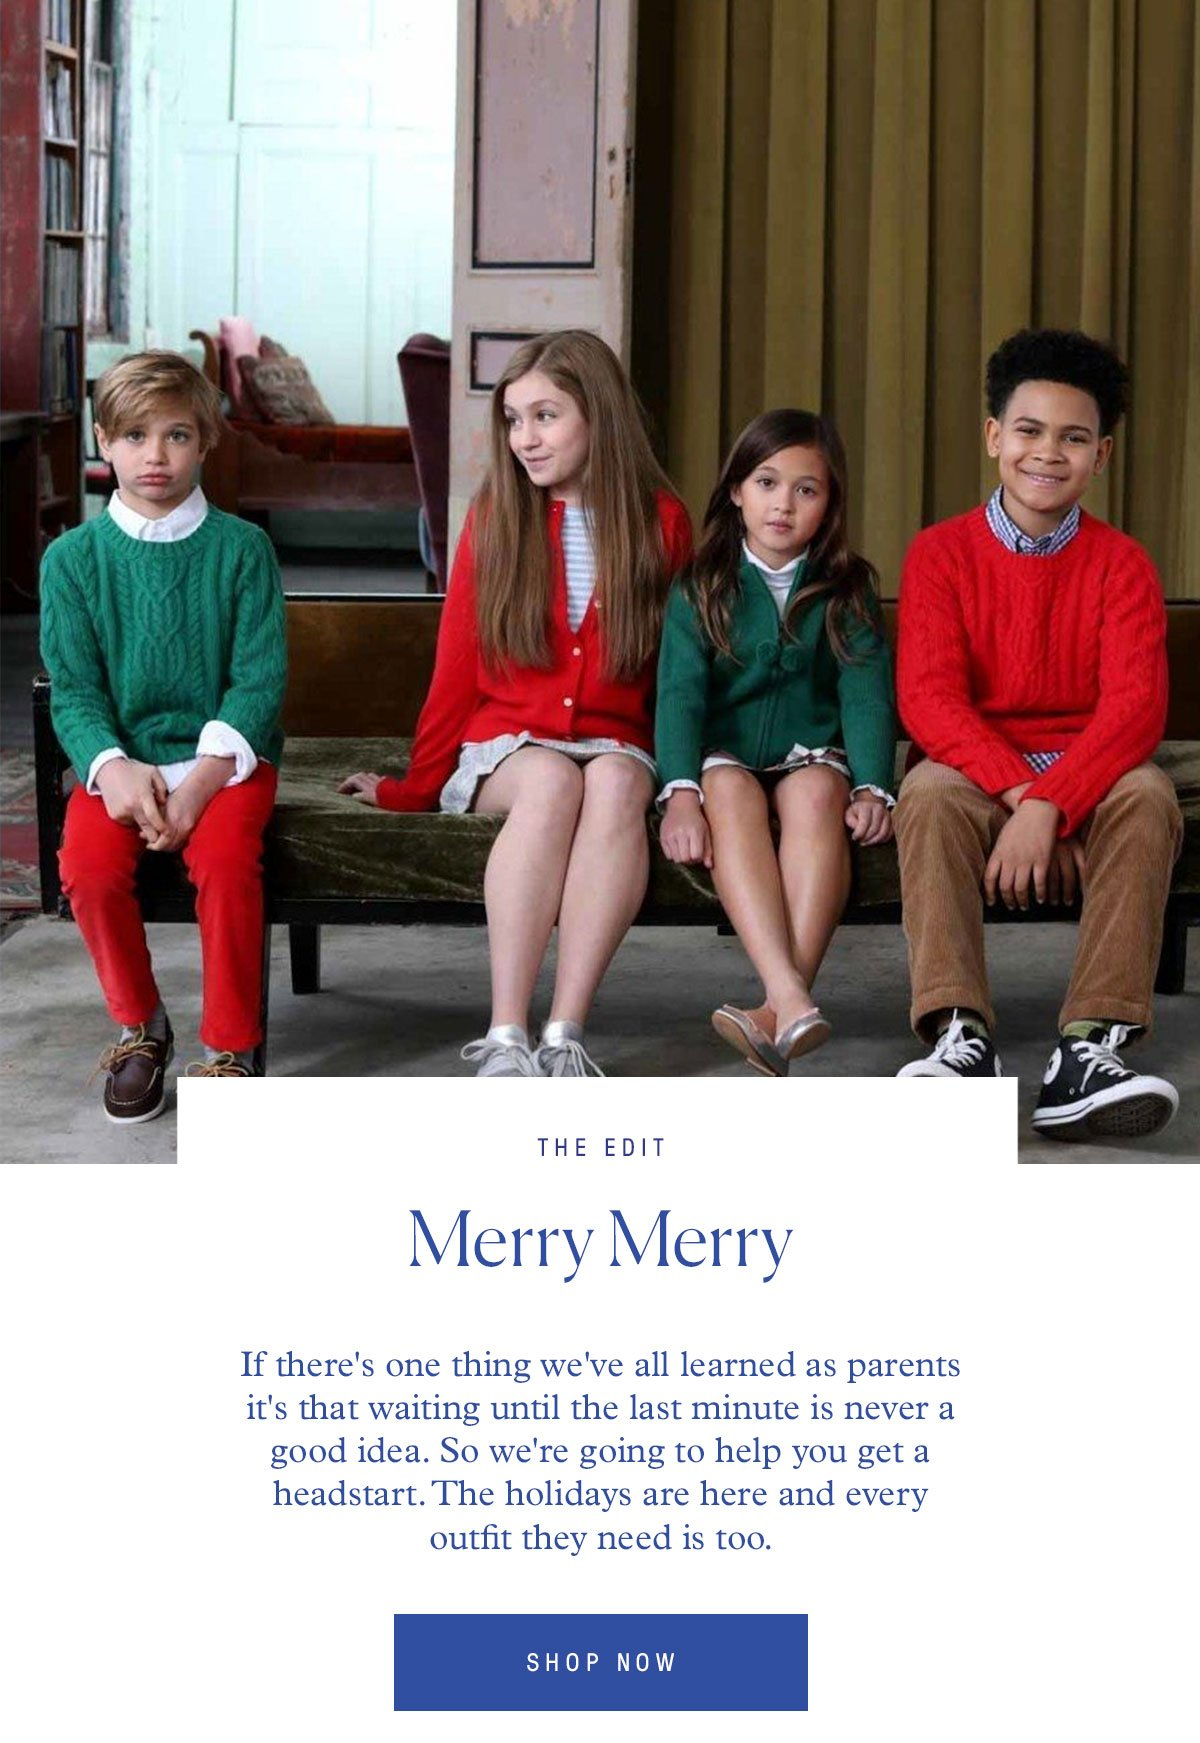 The Edit Merry Merry If there's one thing we've all learned as parents it's that waiting until the last minute is never a good idea. So we're going to help you get a headstart. The holidays are here and every outfit they need is too.